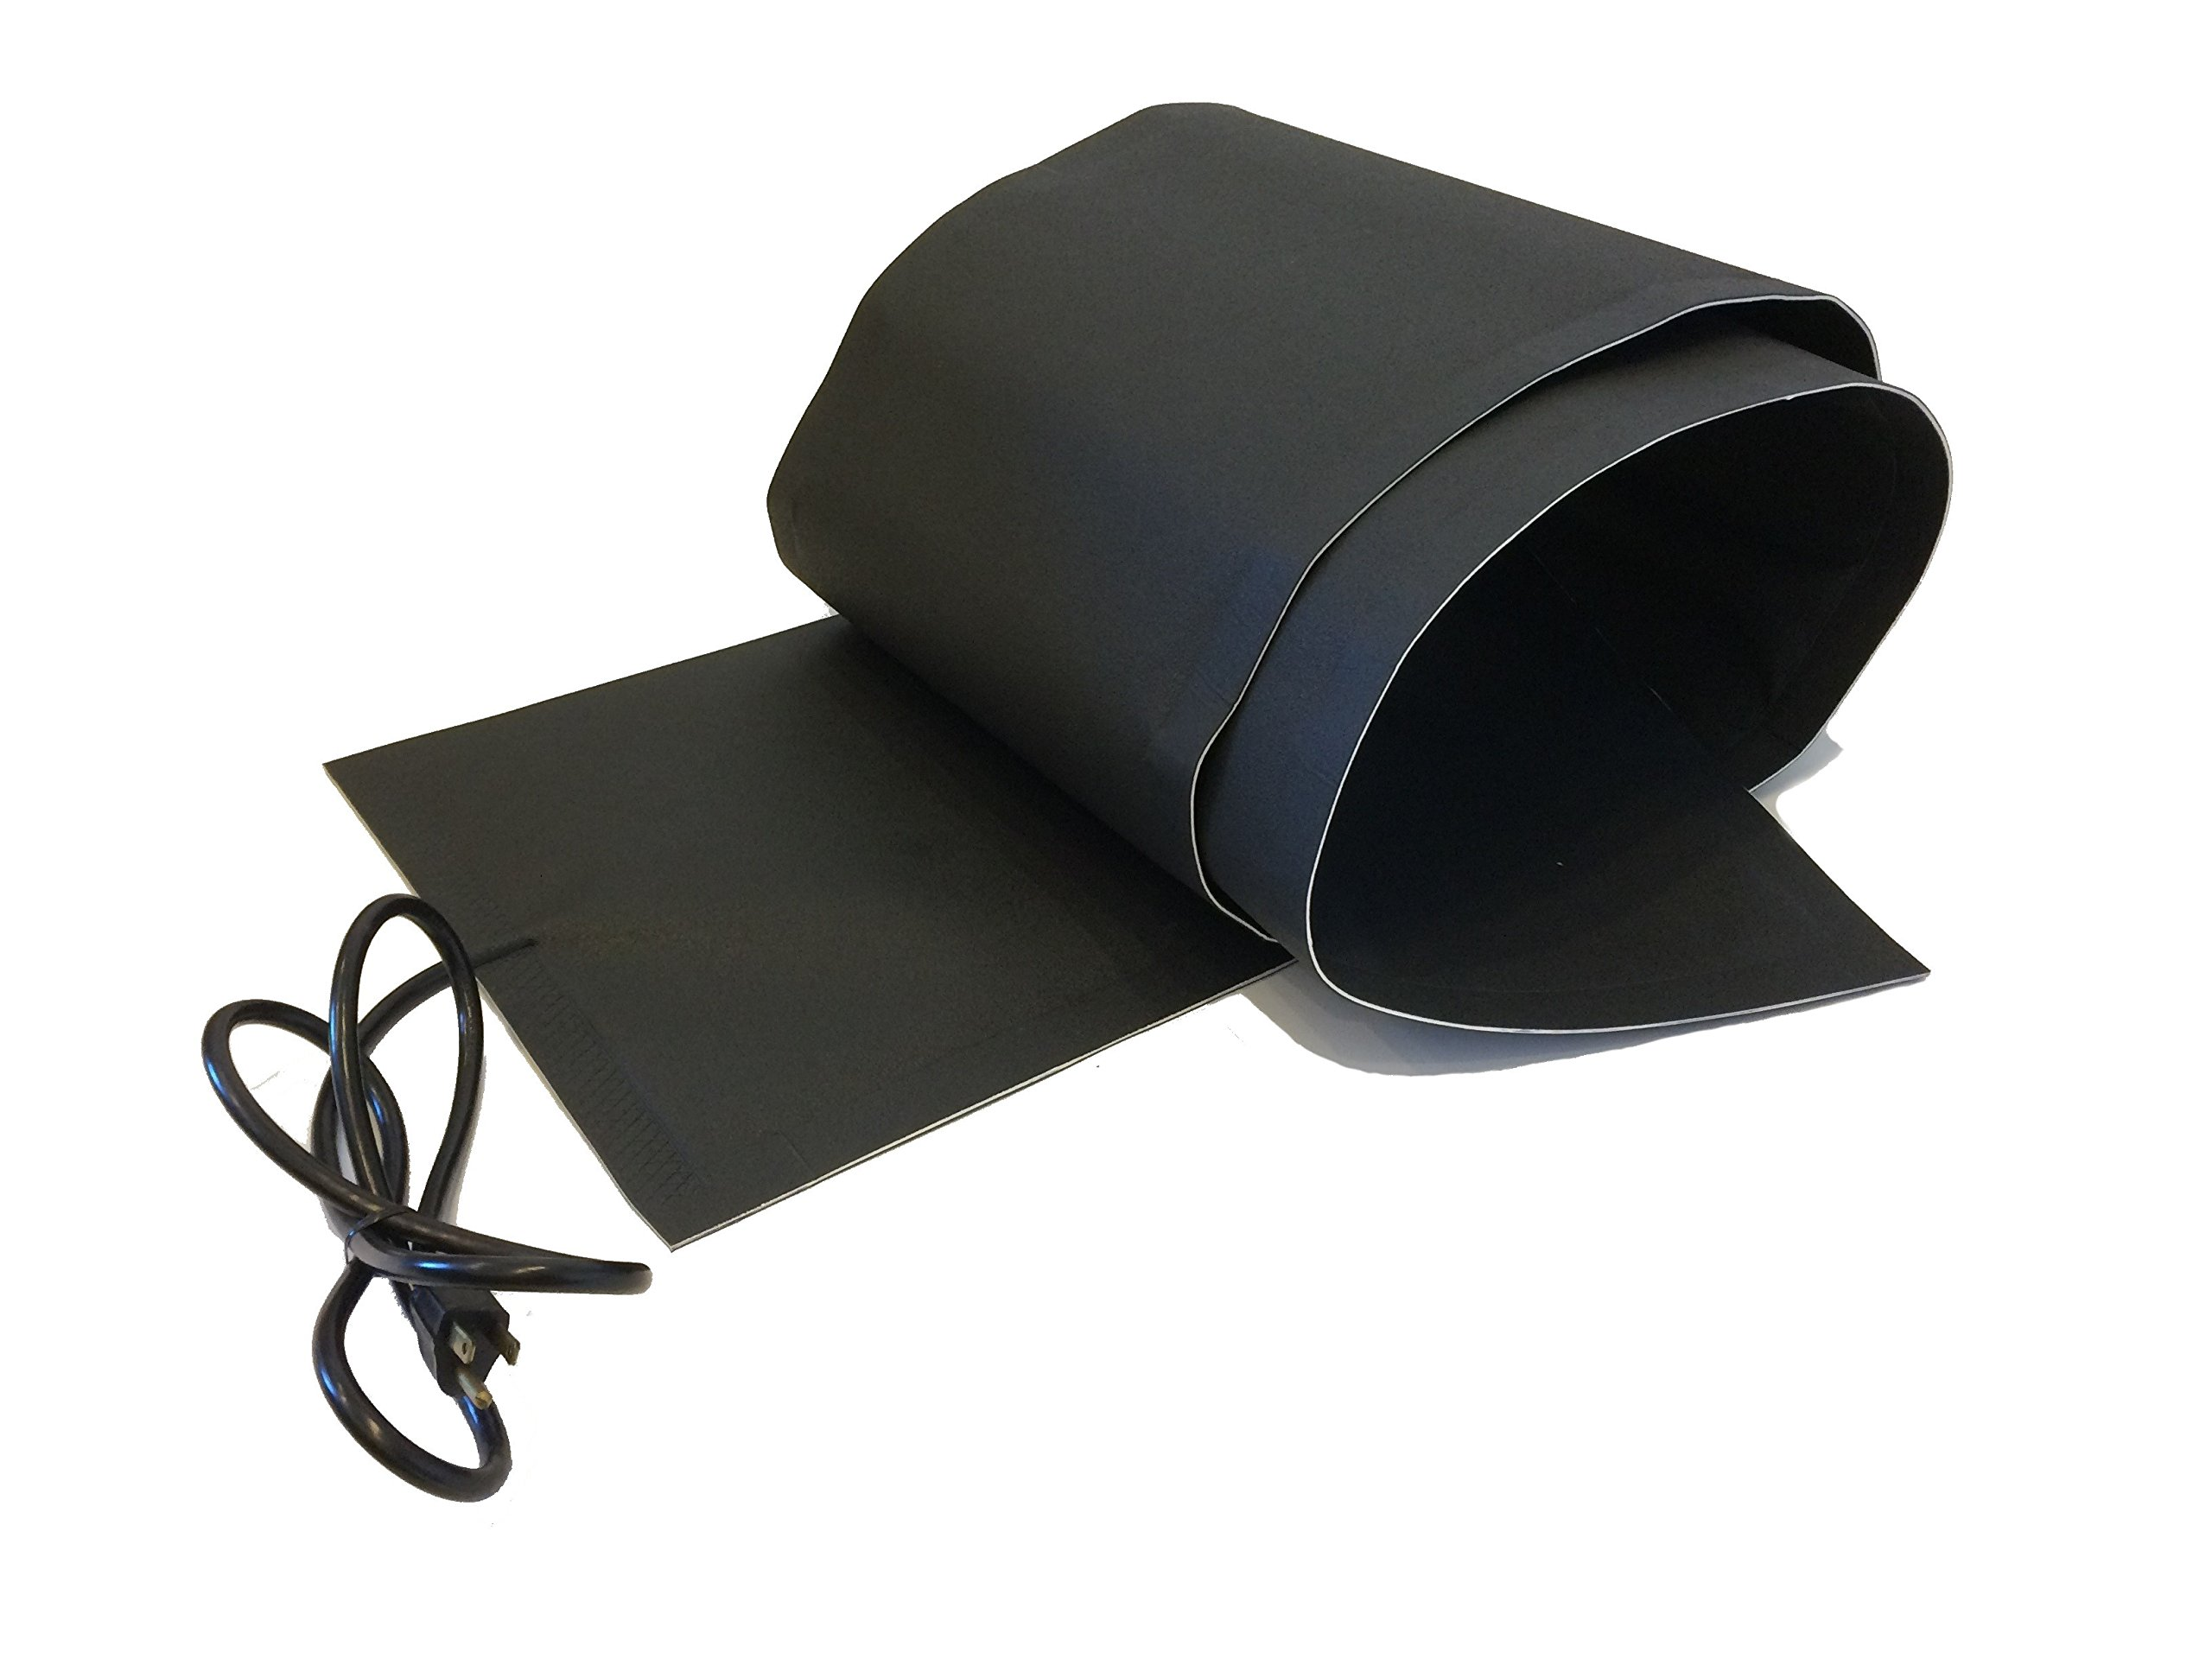 RHS Snow Melting System, roof and valley snow melting mats, Sizes 8' feet x 13'' inches, Color black, UL components, 8 ft. mat melts 2'' inches of snow per hour, buy factory direct, by RHS Valley Heater